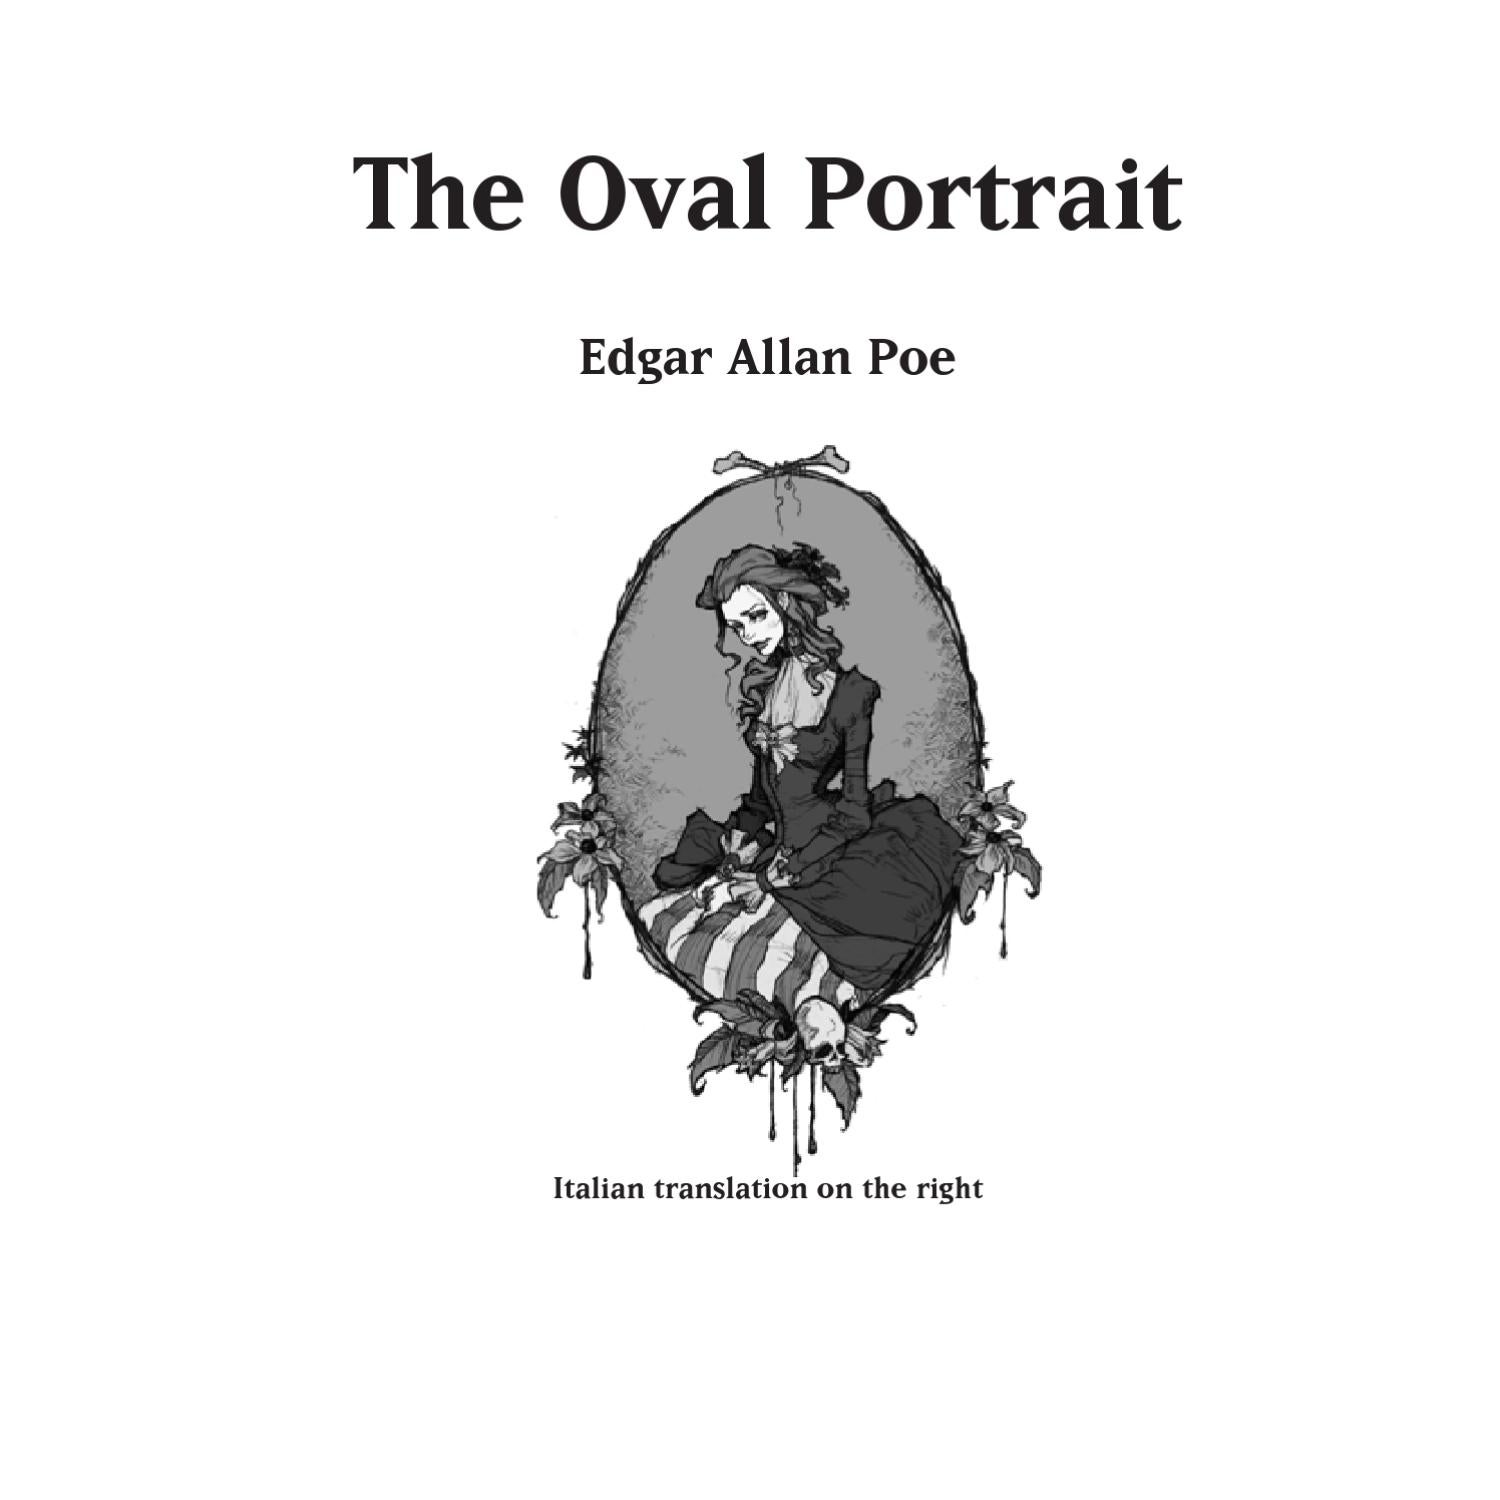 analysis oval portrait edgar allen poe Sit back, close your eyes, and enjoy some imagination about artistic passions overtaking common sense this is one of my favorite short stories by poe narra.